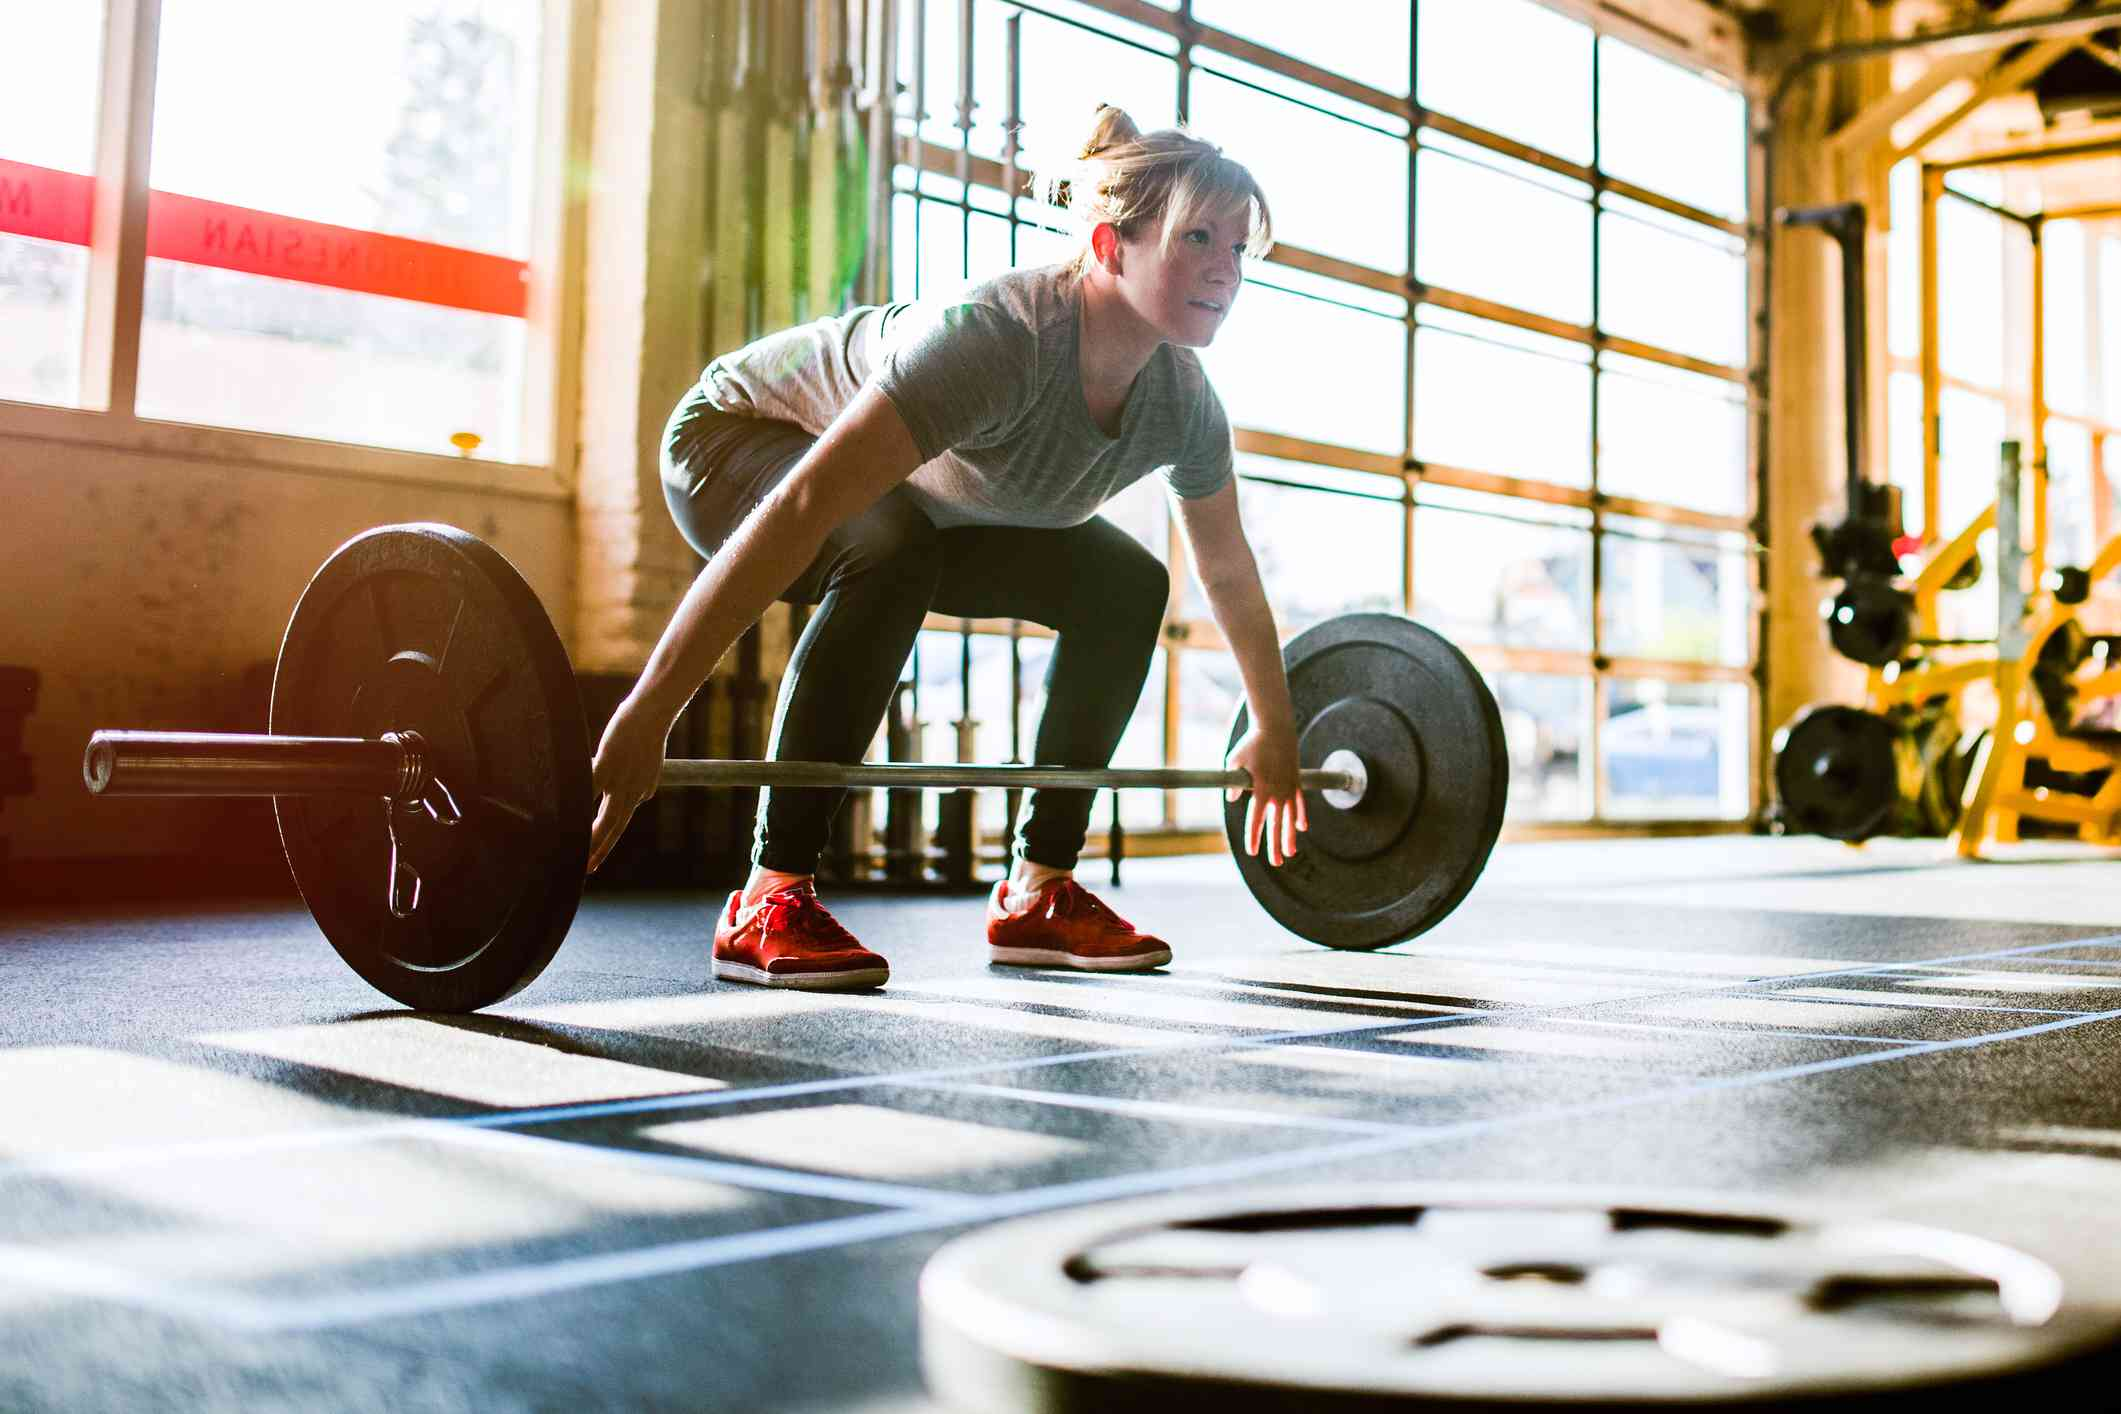 Lower Body Circuit Blast To Tone Your Legs Chest And Back Superset Workout Tighten Cross Training Woman Performing Deadlift A Young Exhibits Her Strength Power Ability